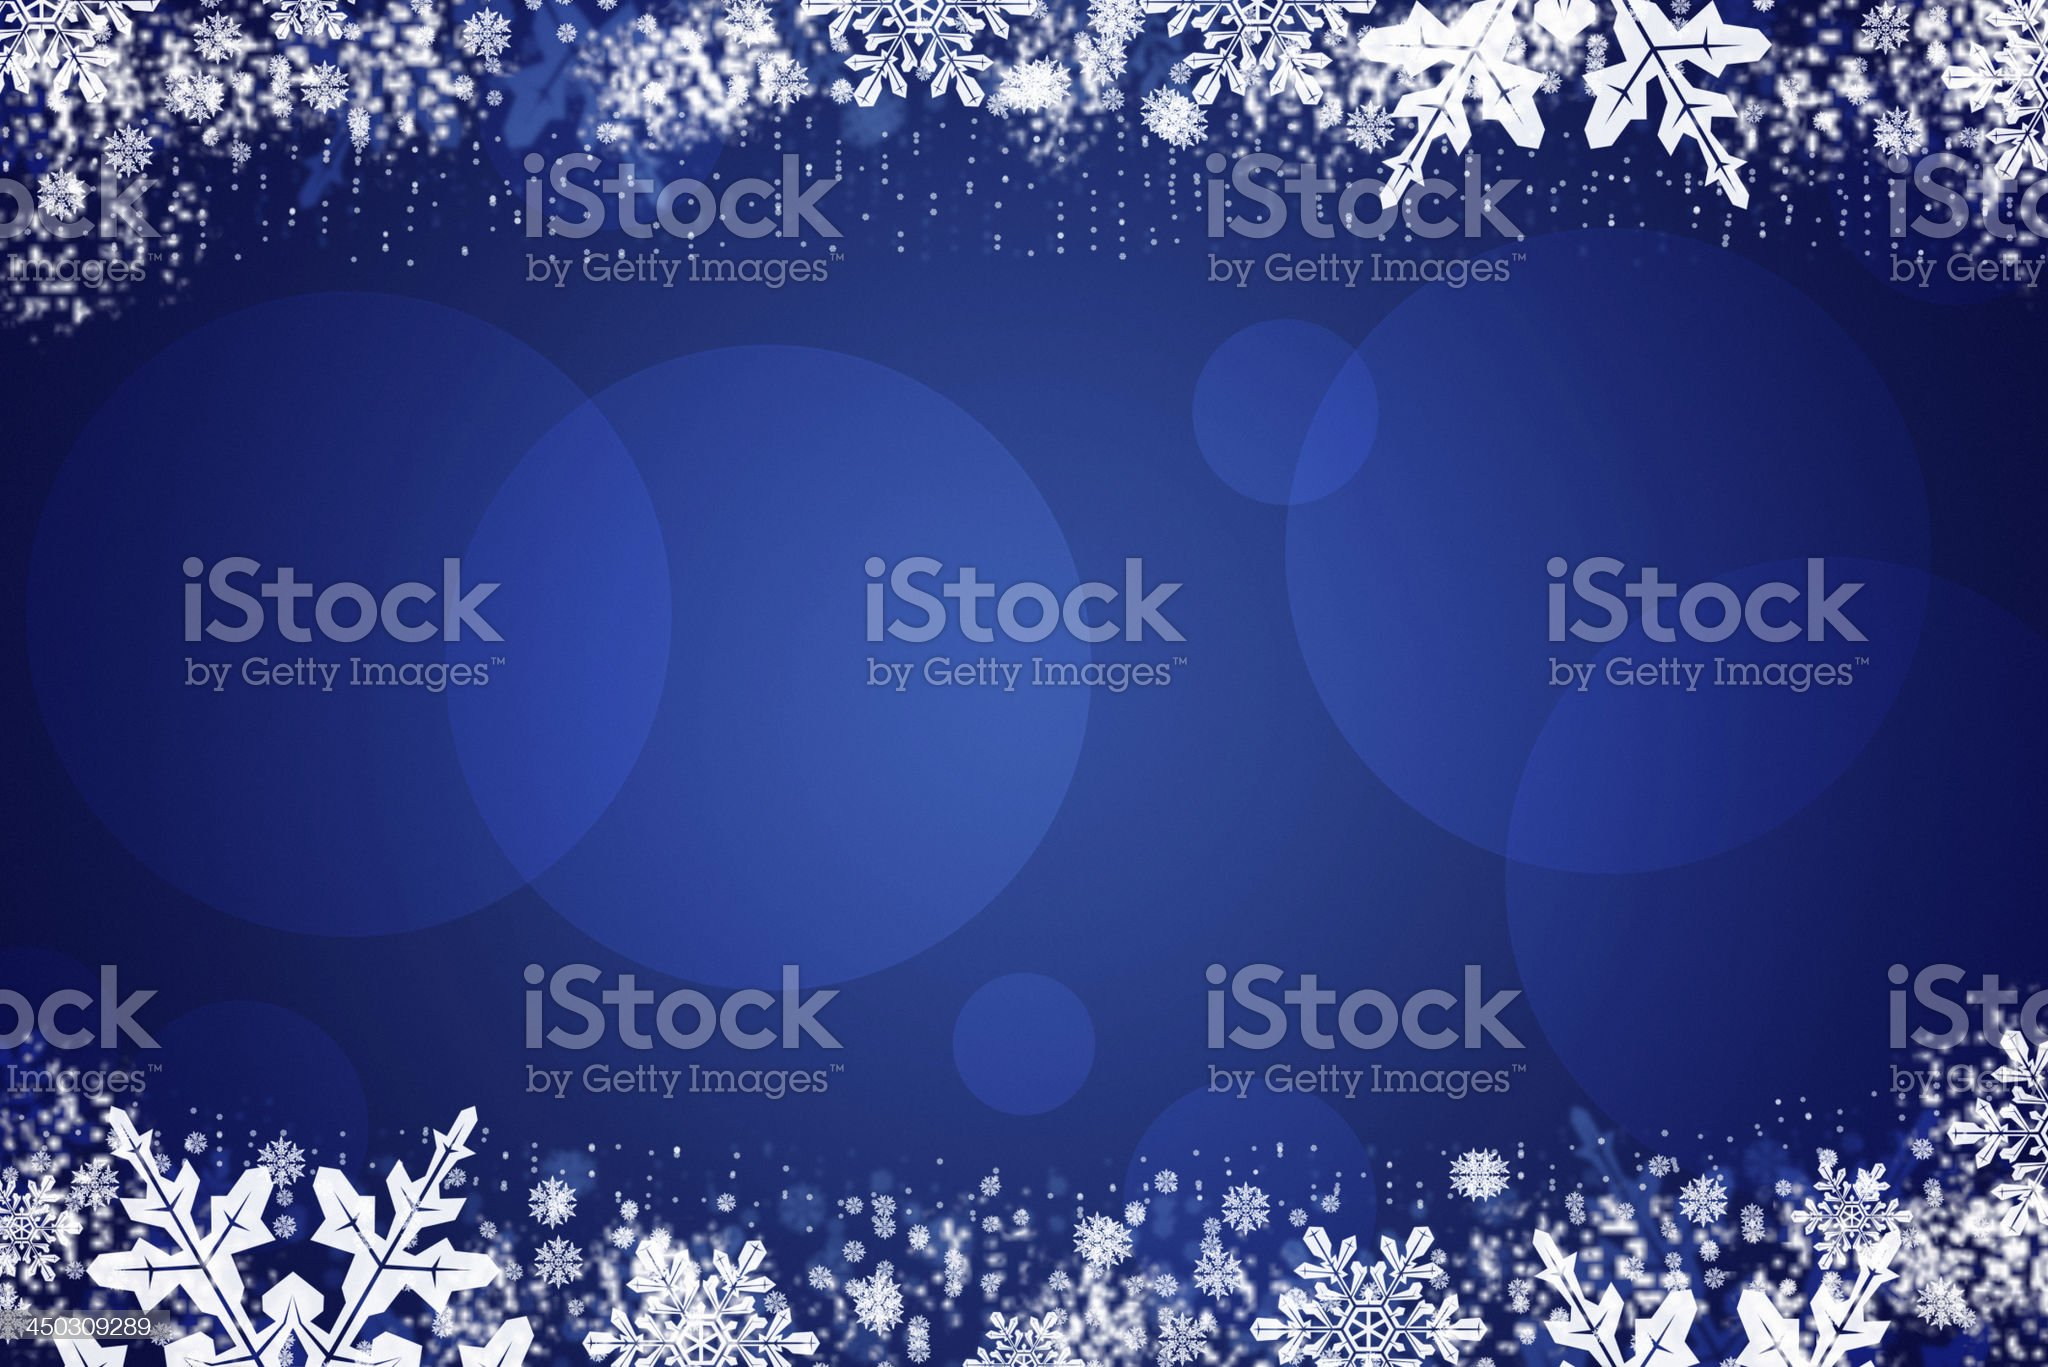 Snowflakes background royalty-free stock photo